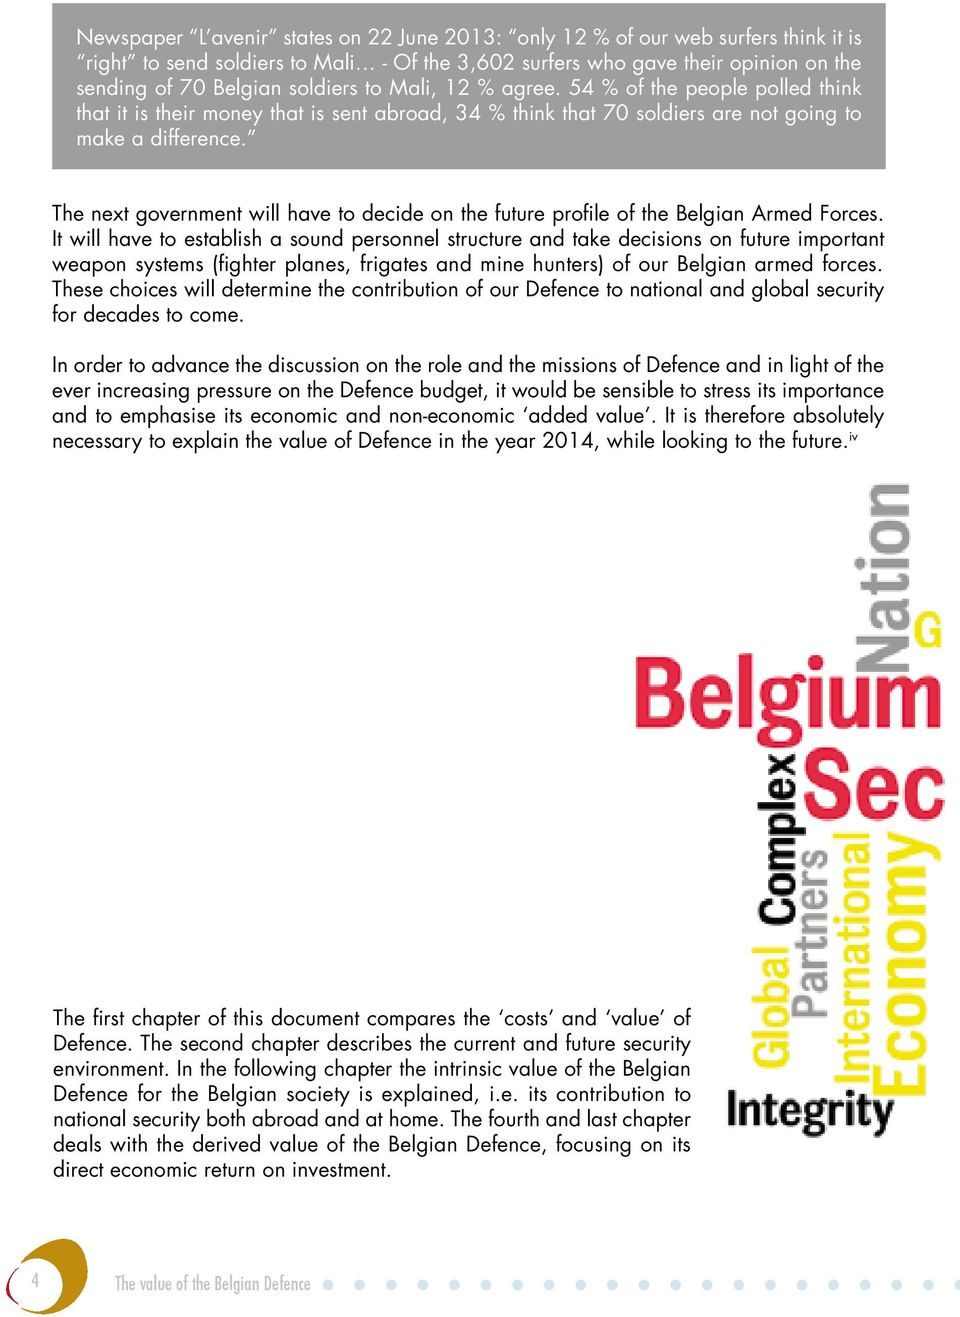 The next government will have to decide on the future profile of the Belgian Armed Forces.